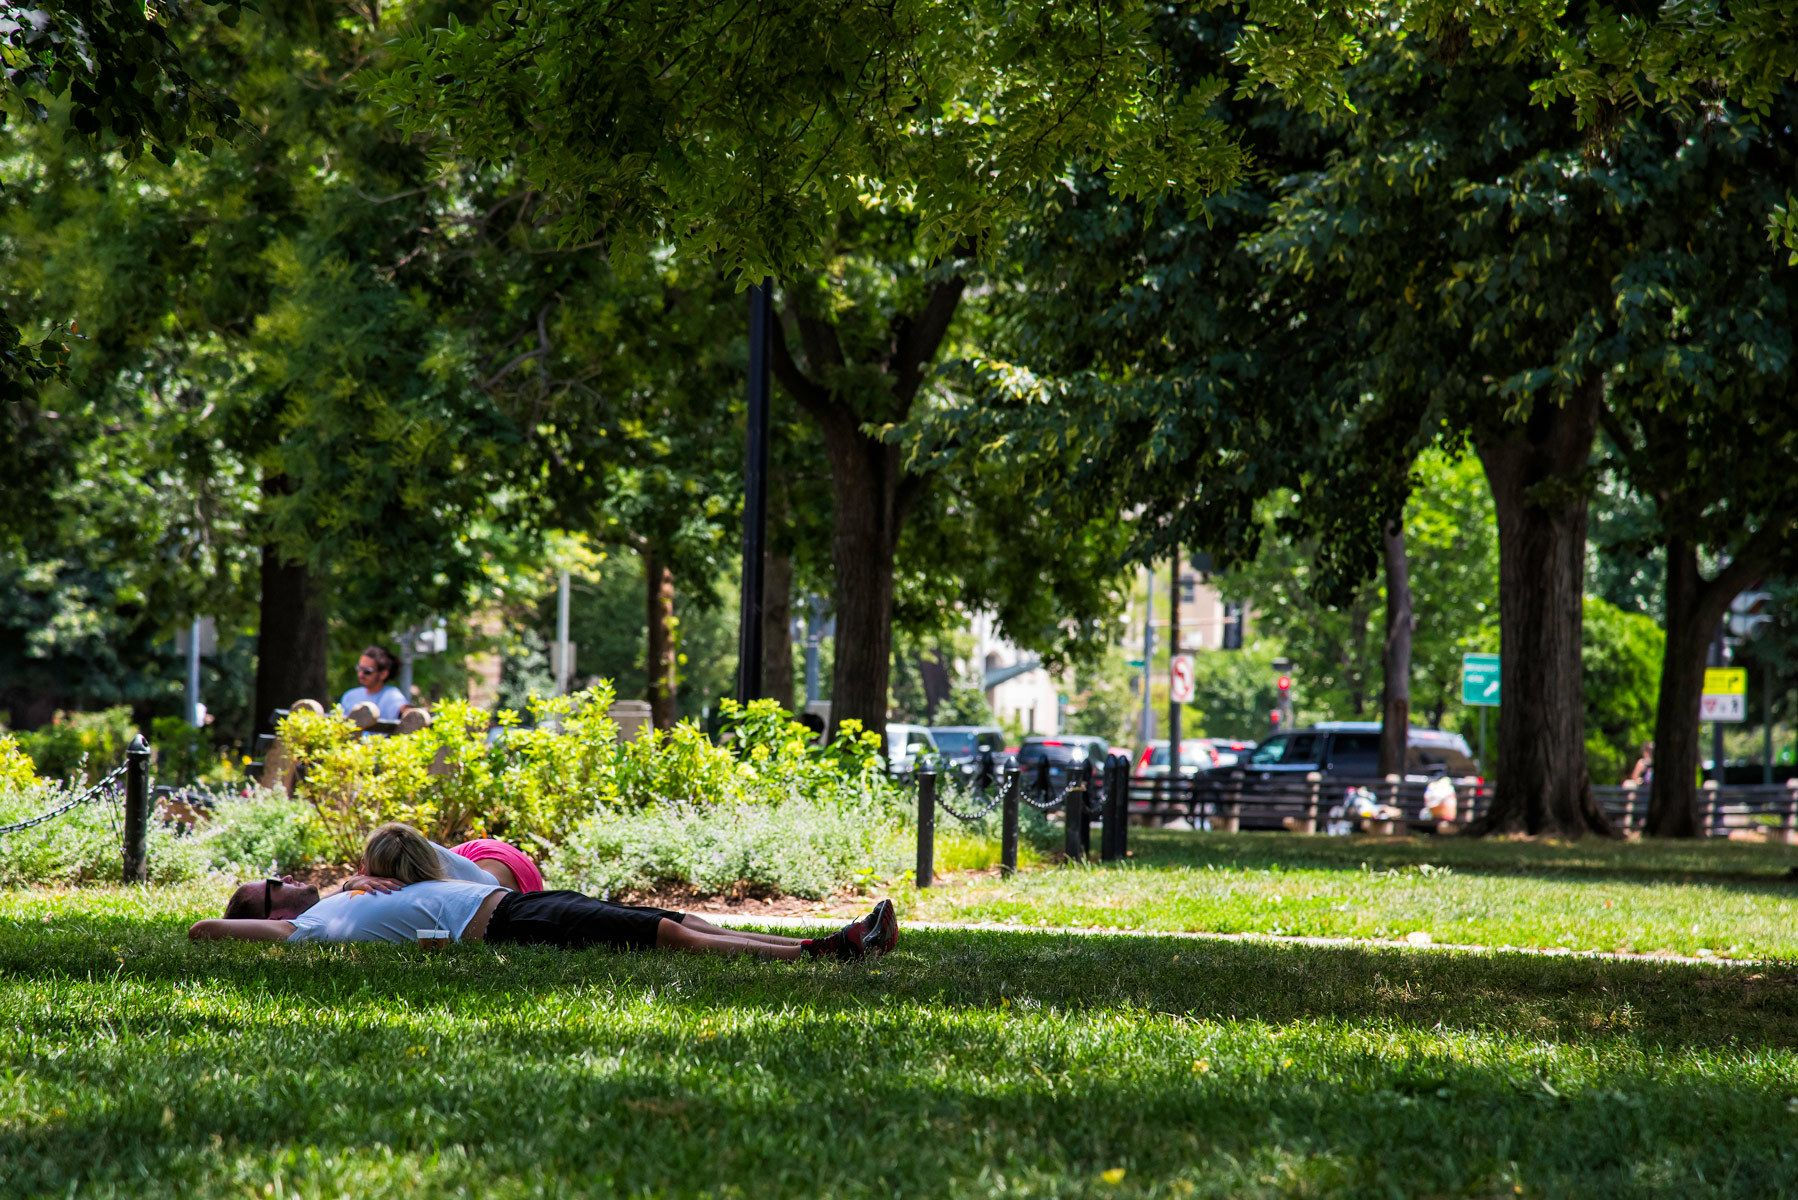 Couple relaxing on grass in Dupont Circle